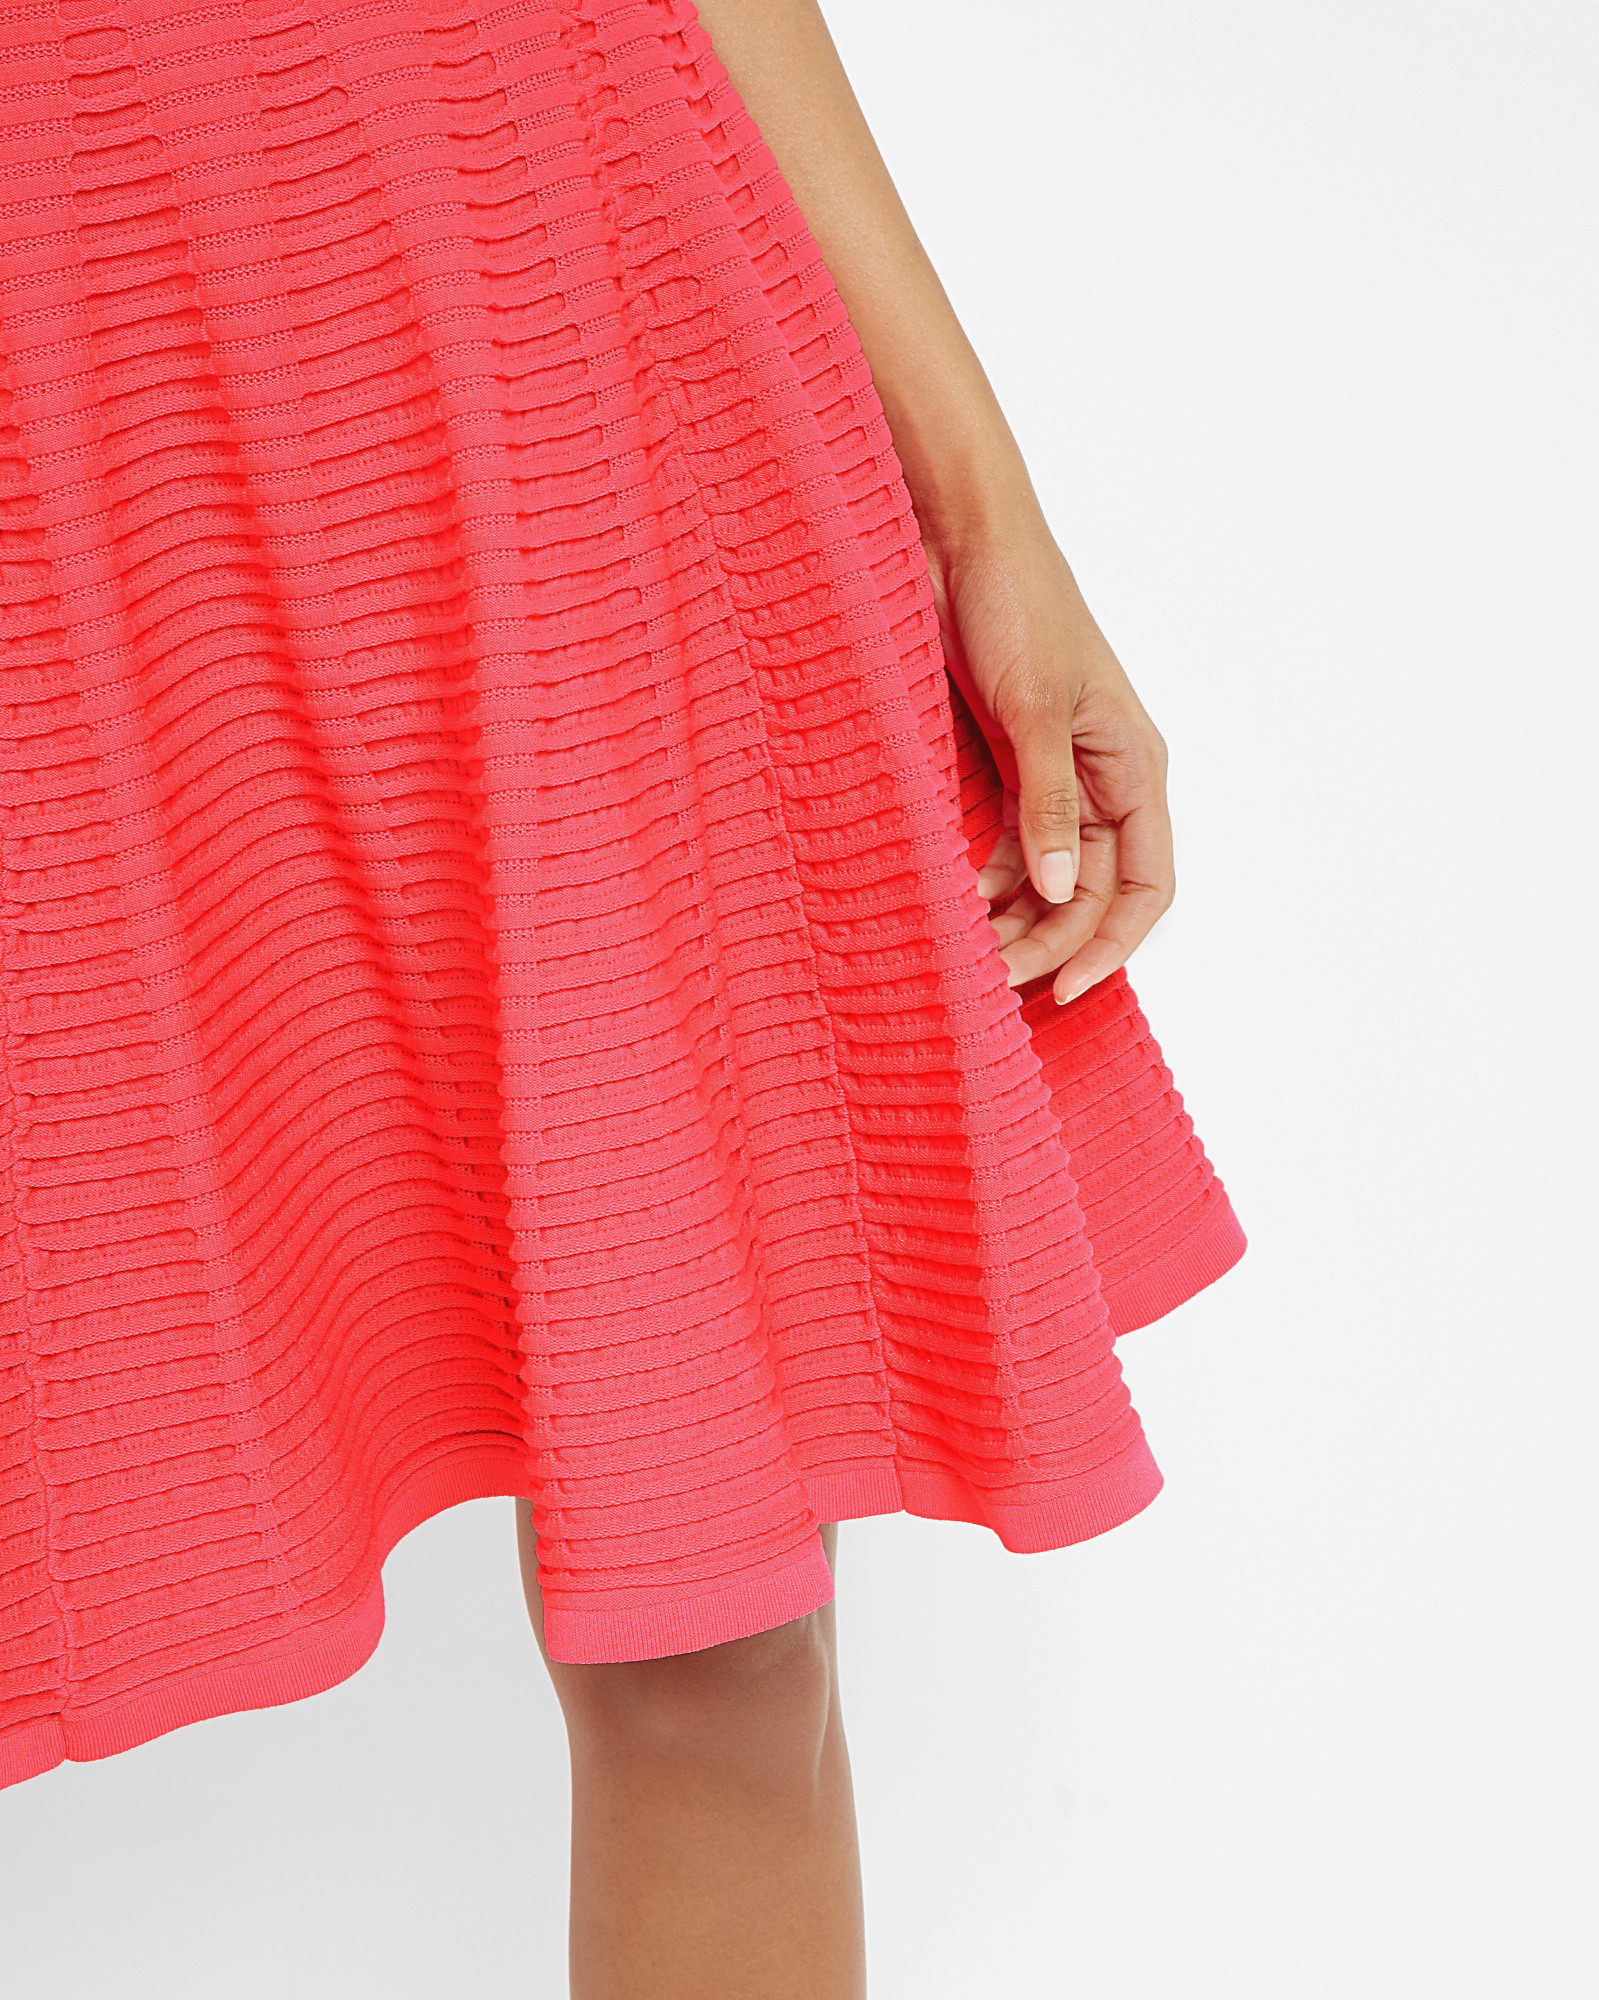 Ted baker Ottoman Ribbed Dress in Red